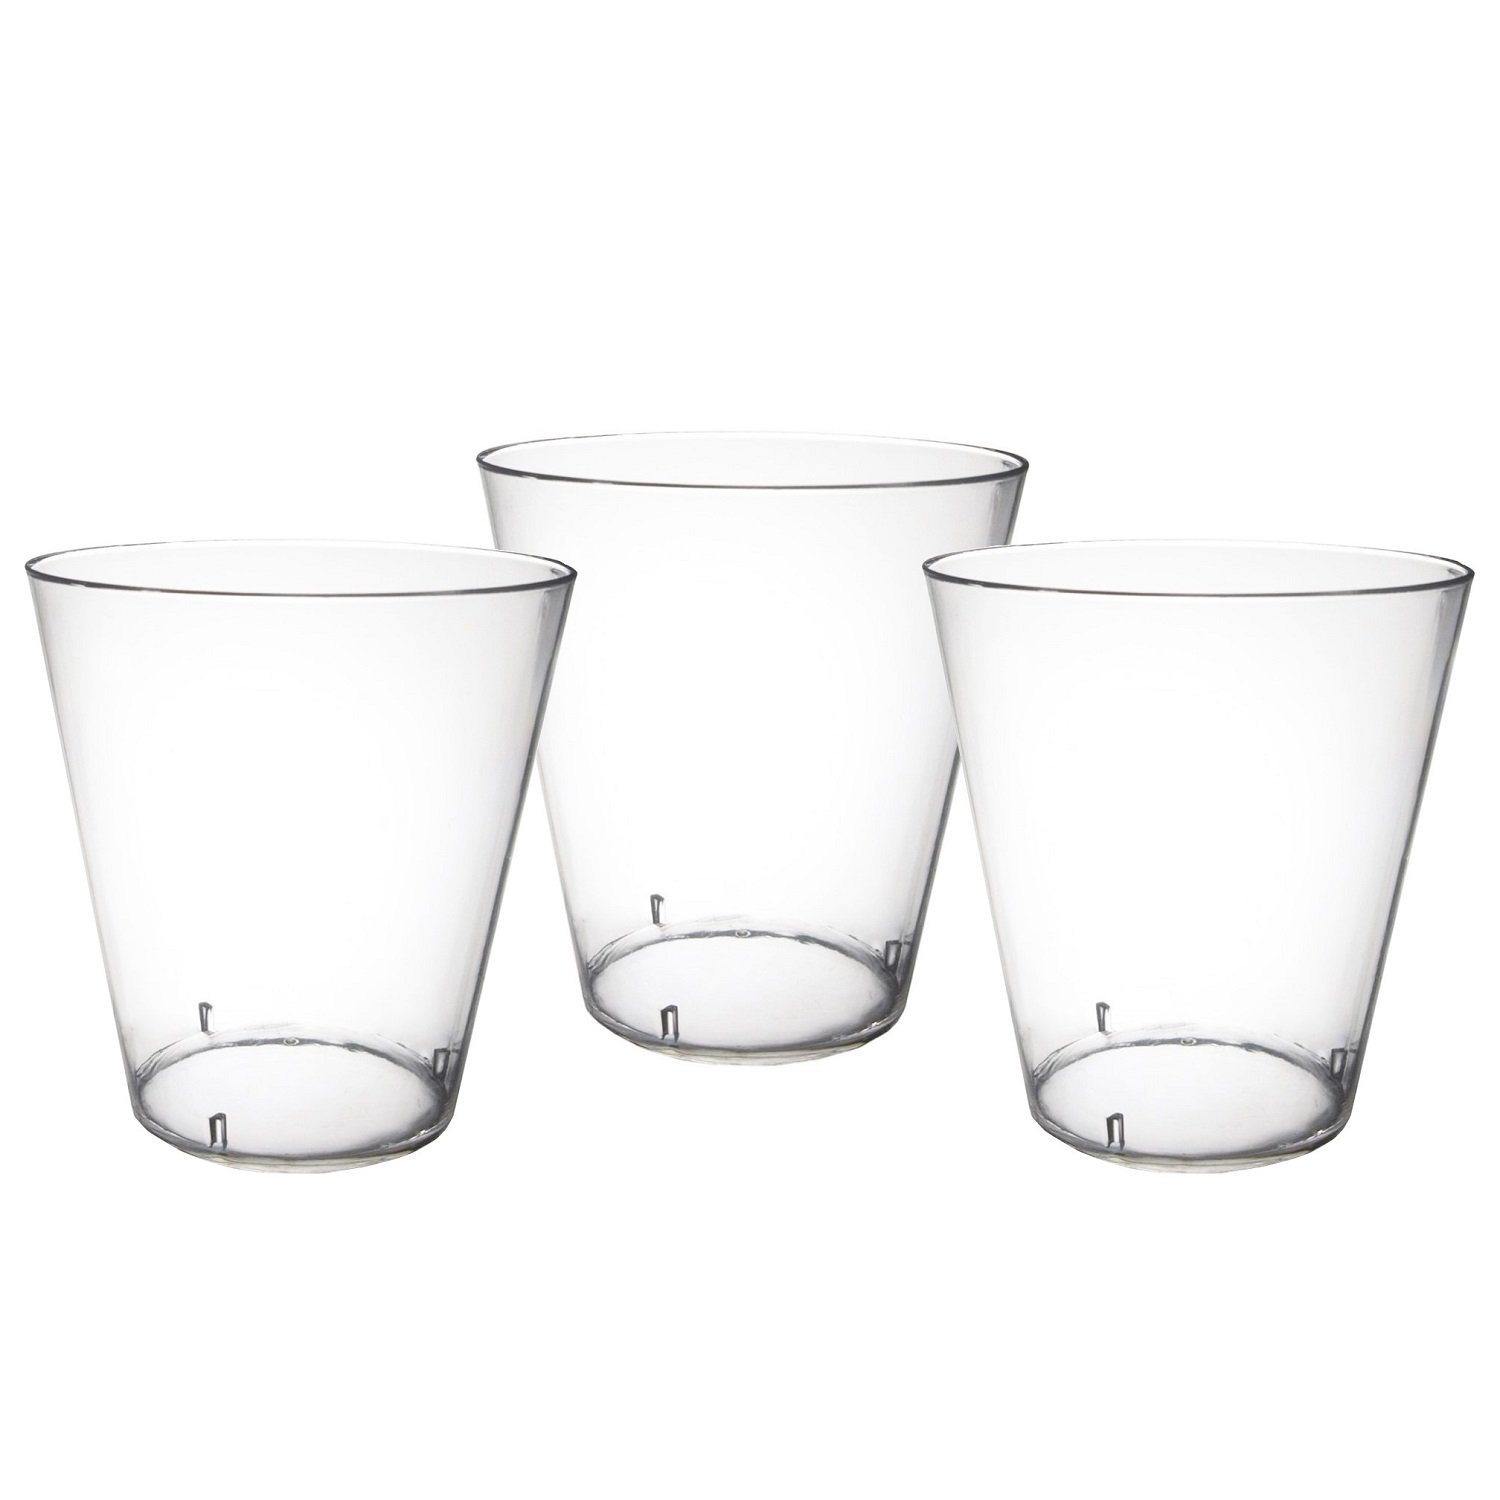 Party Essentials Hard Plastic 2-Ounce Shot/Shooter Glasses, Clear, 200-Count, Clear by Party Essentials